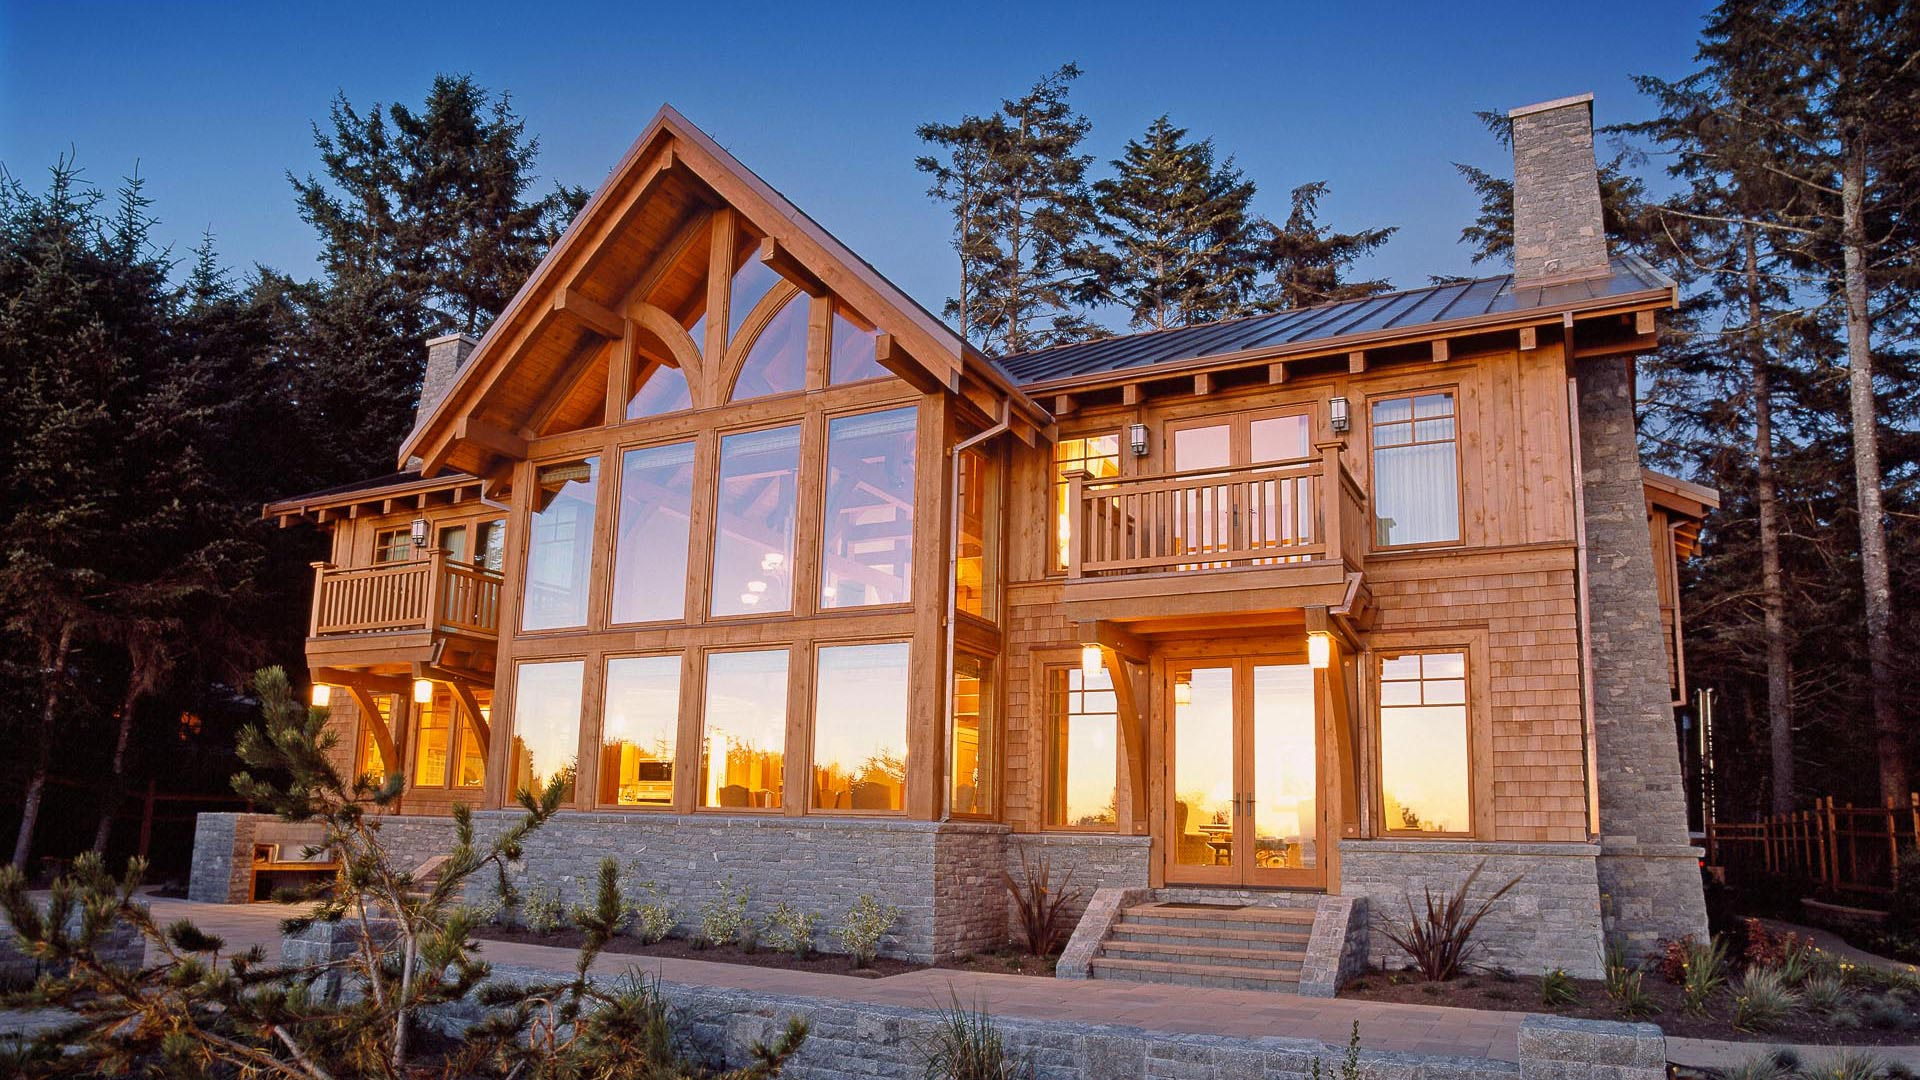 Classic timber frame island timber frame for Luxury timber frame home plans